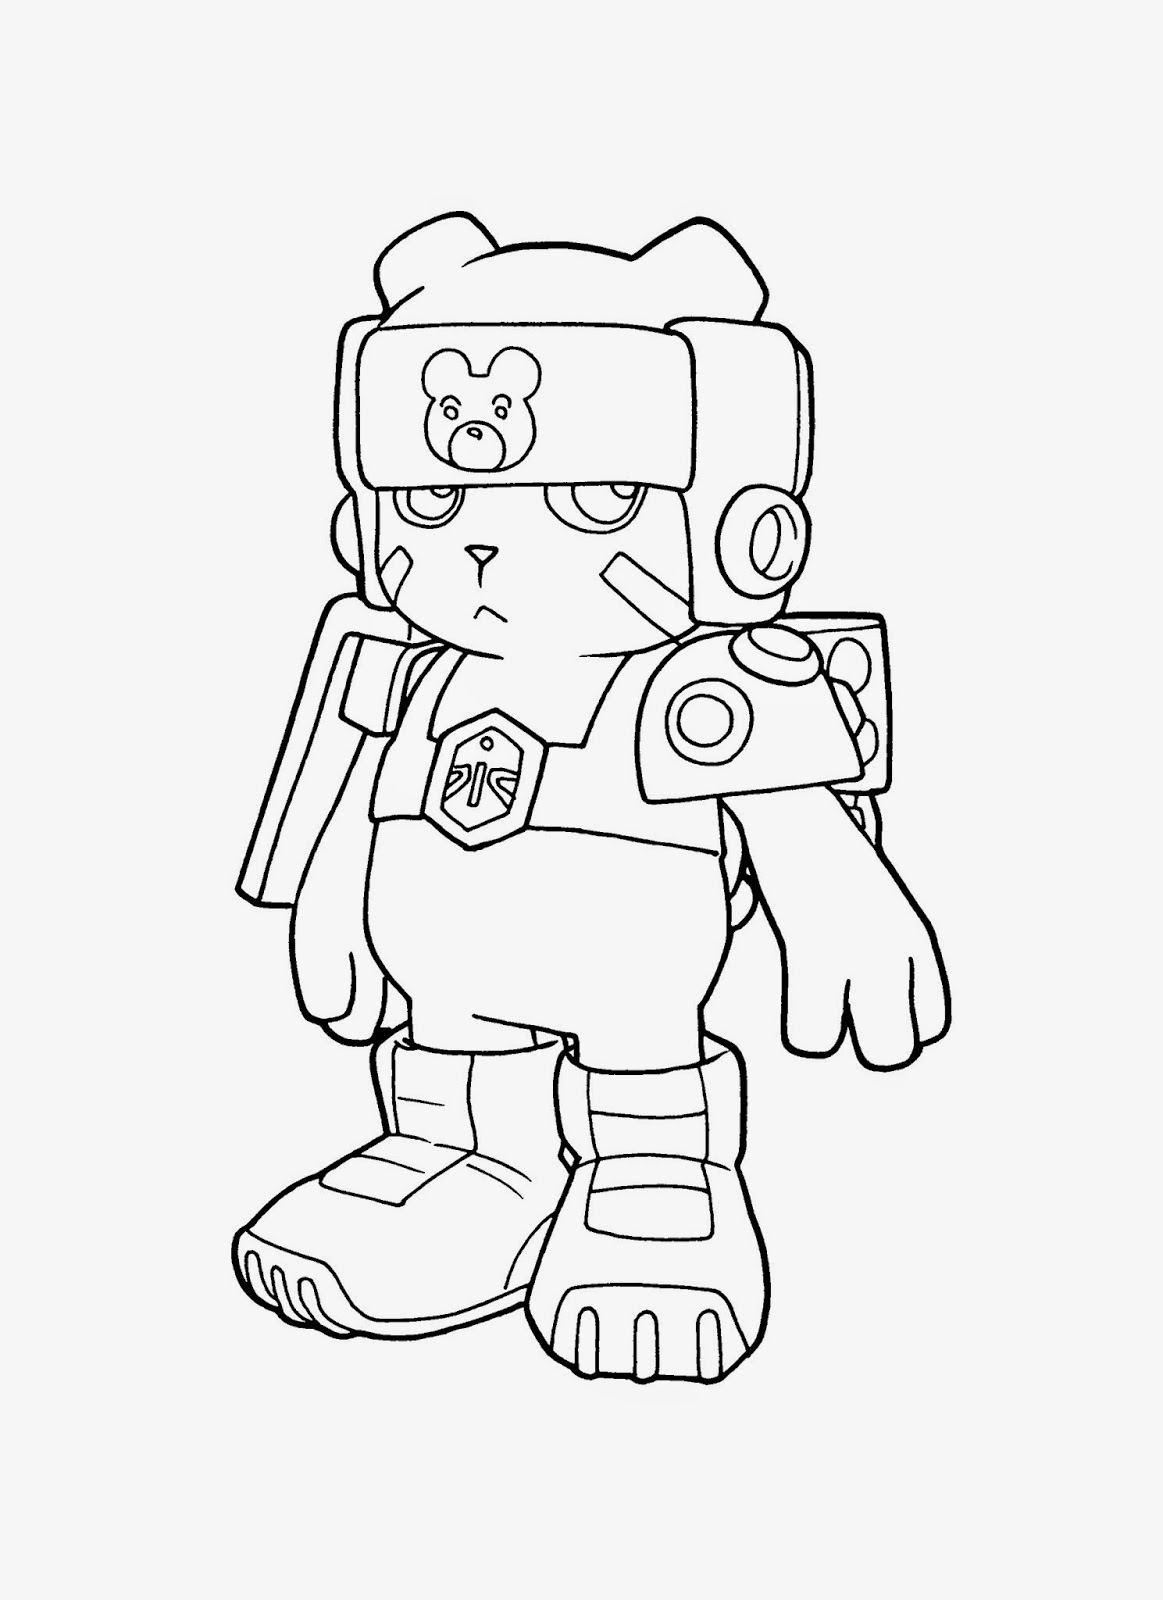 digimon data squad coloring pages - photo#36